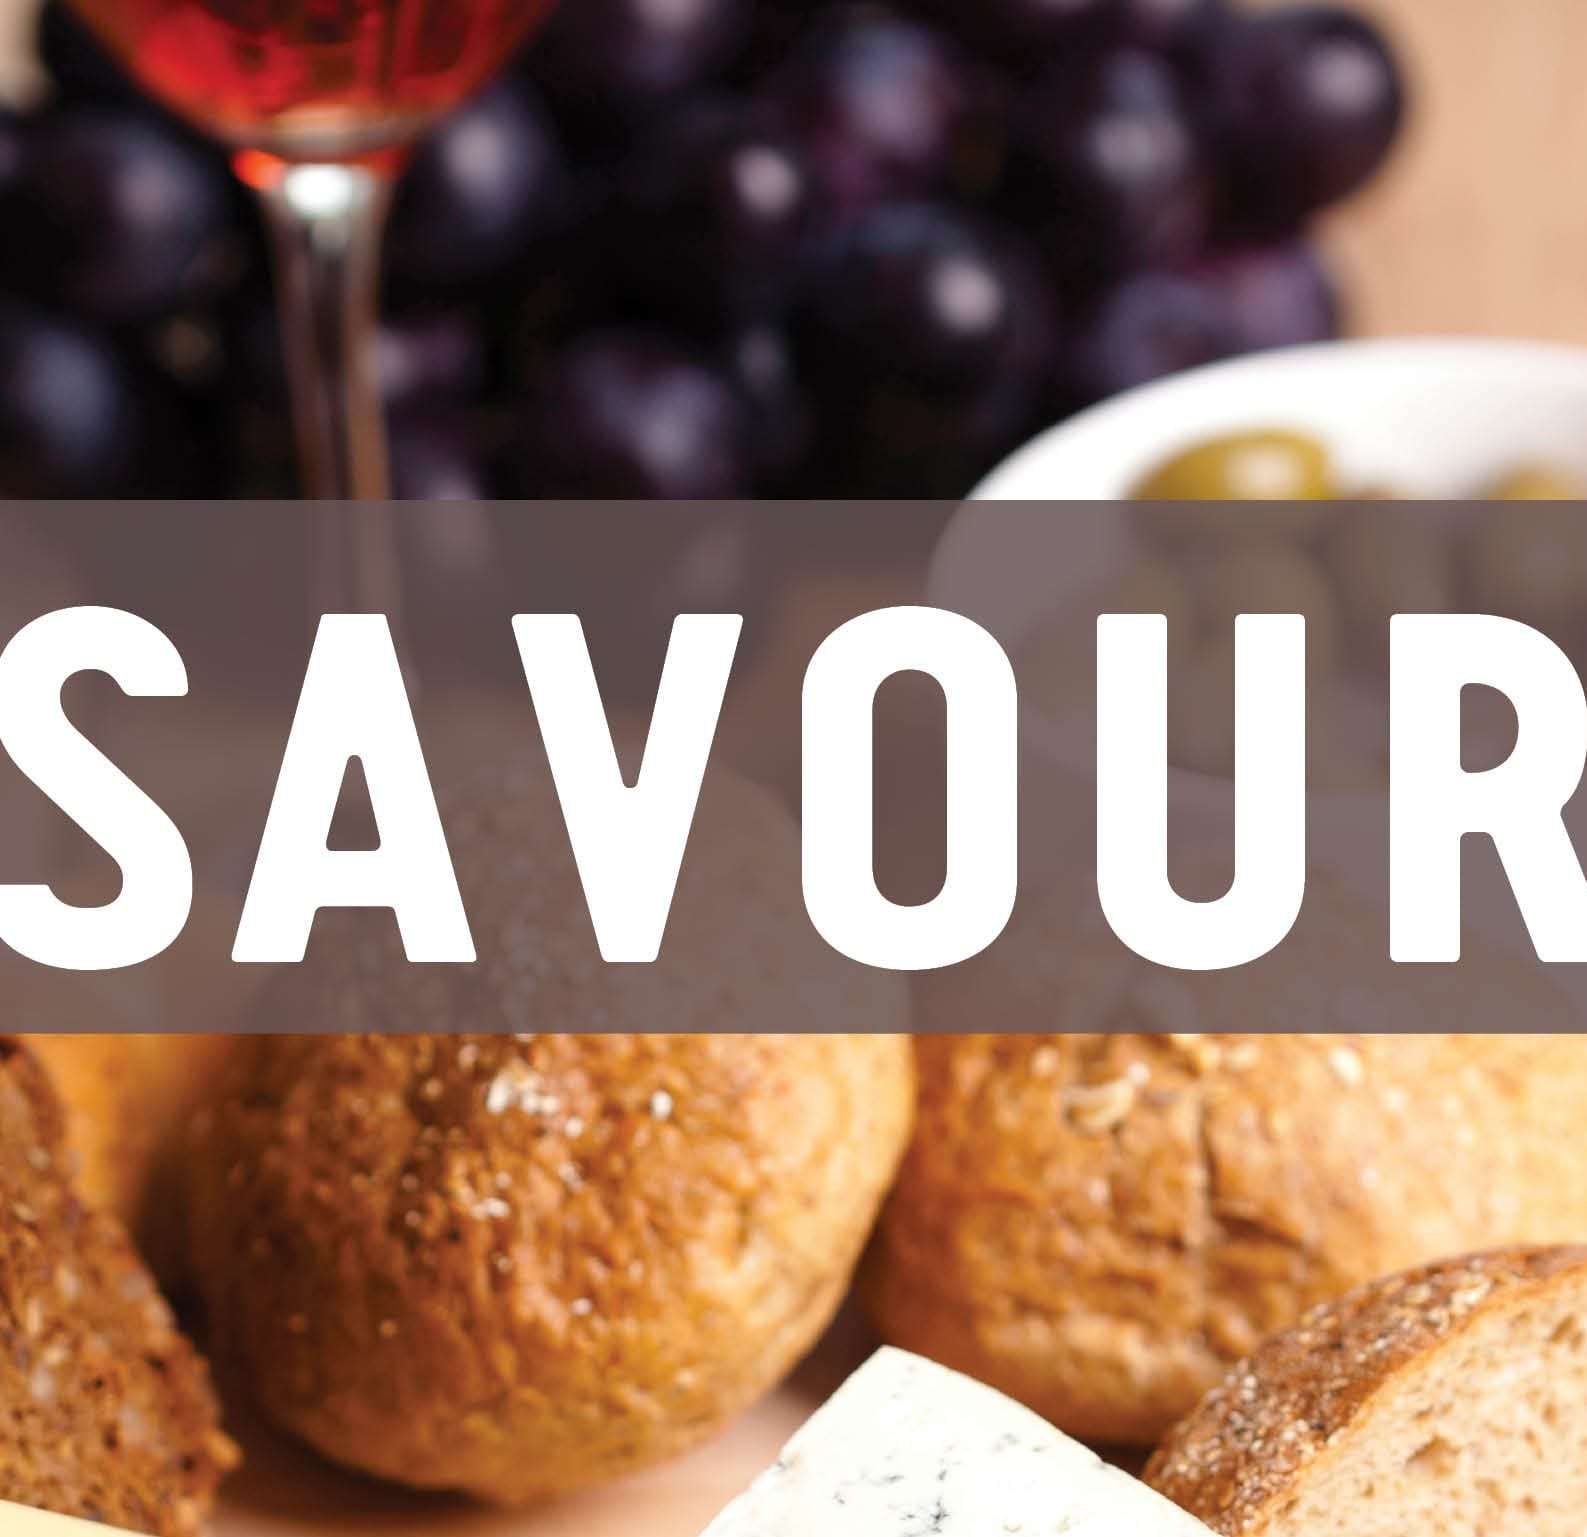 Savour |  Lonsdale Quay Market's Annual Food and Beverage Festival